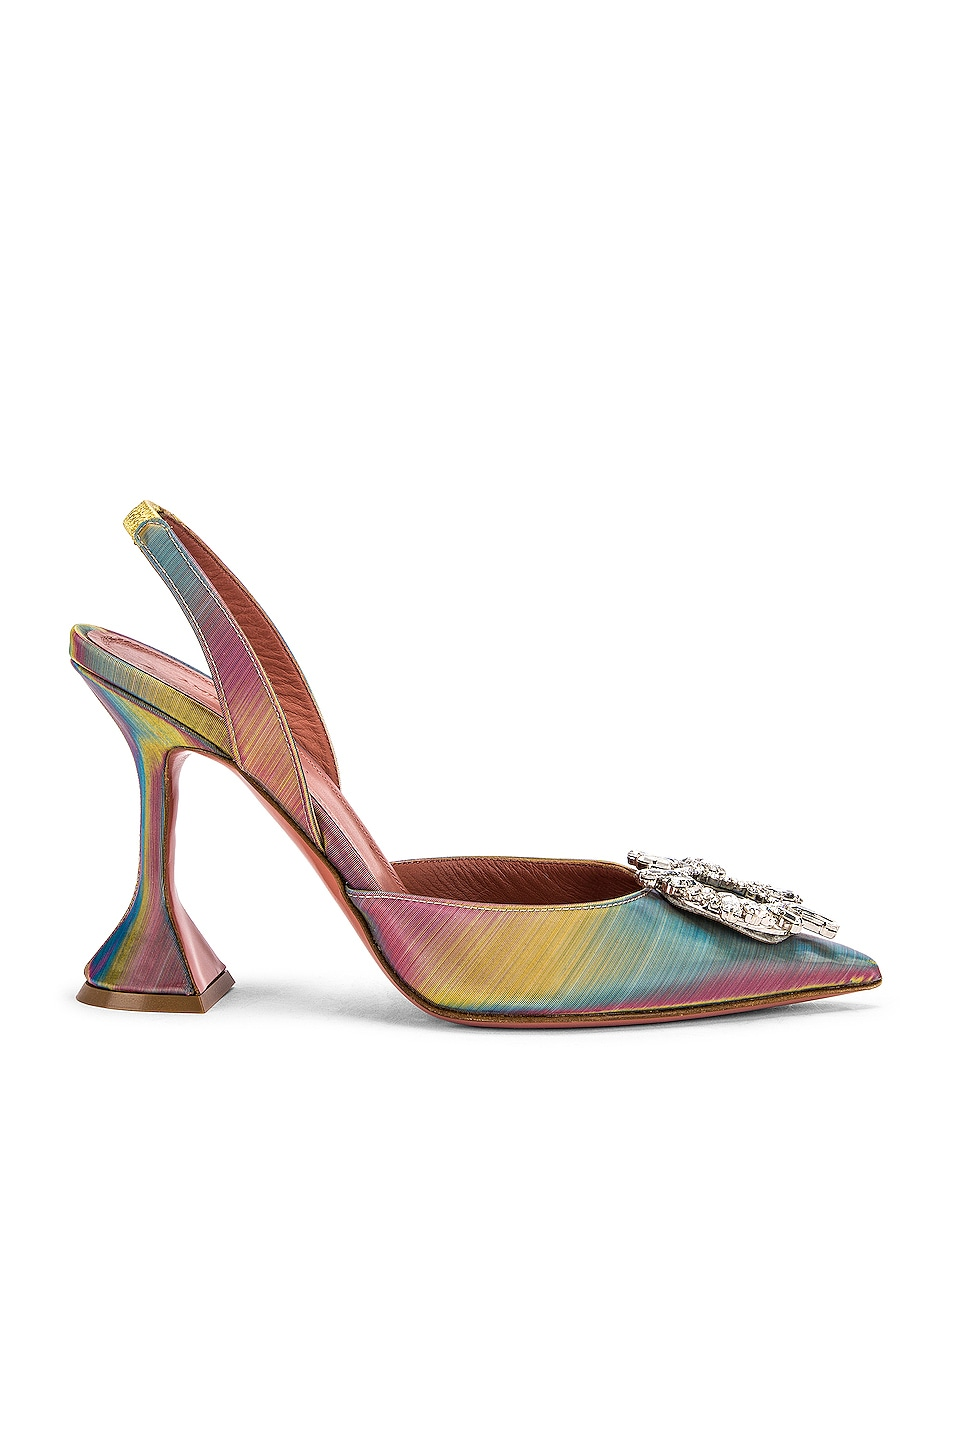 Image 1 of AMINA MUADDI Begum Sling Heel in Shadow Leather Multicolor